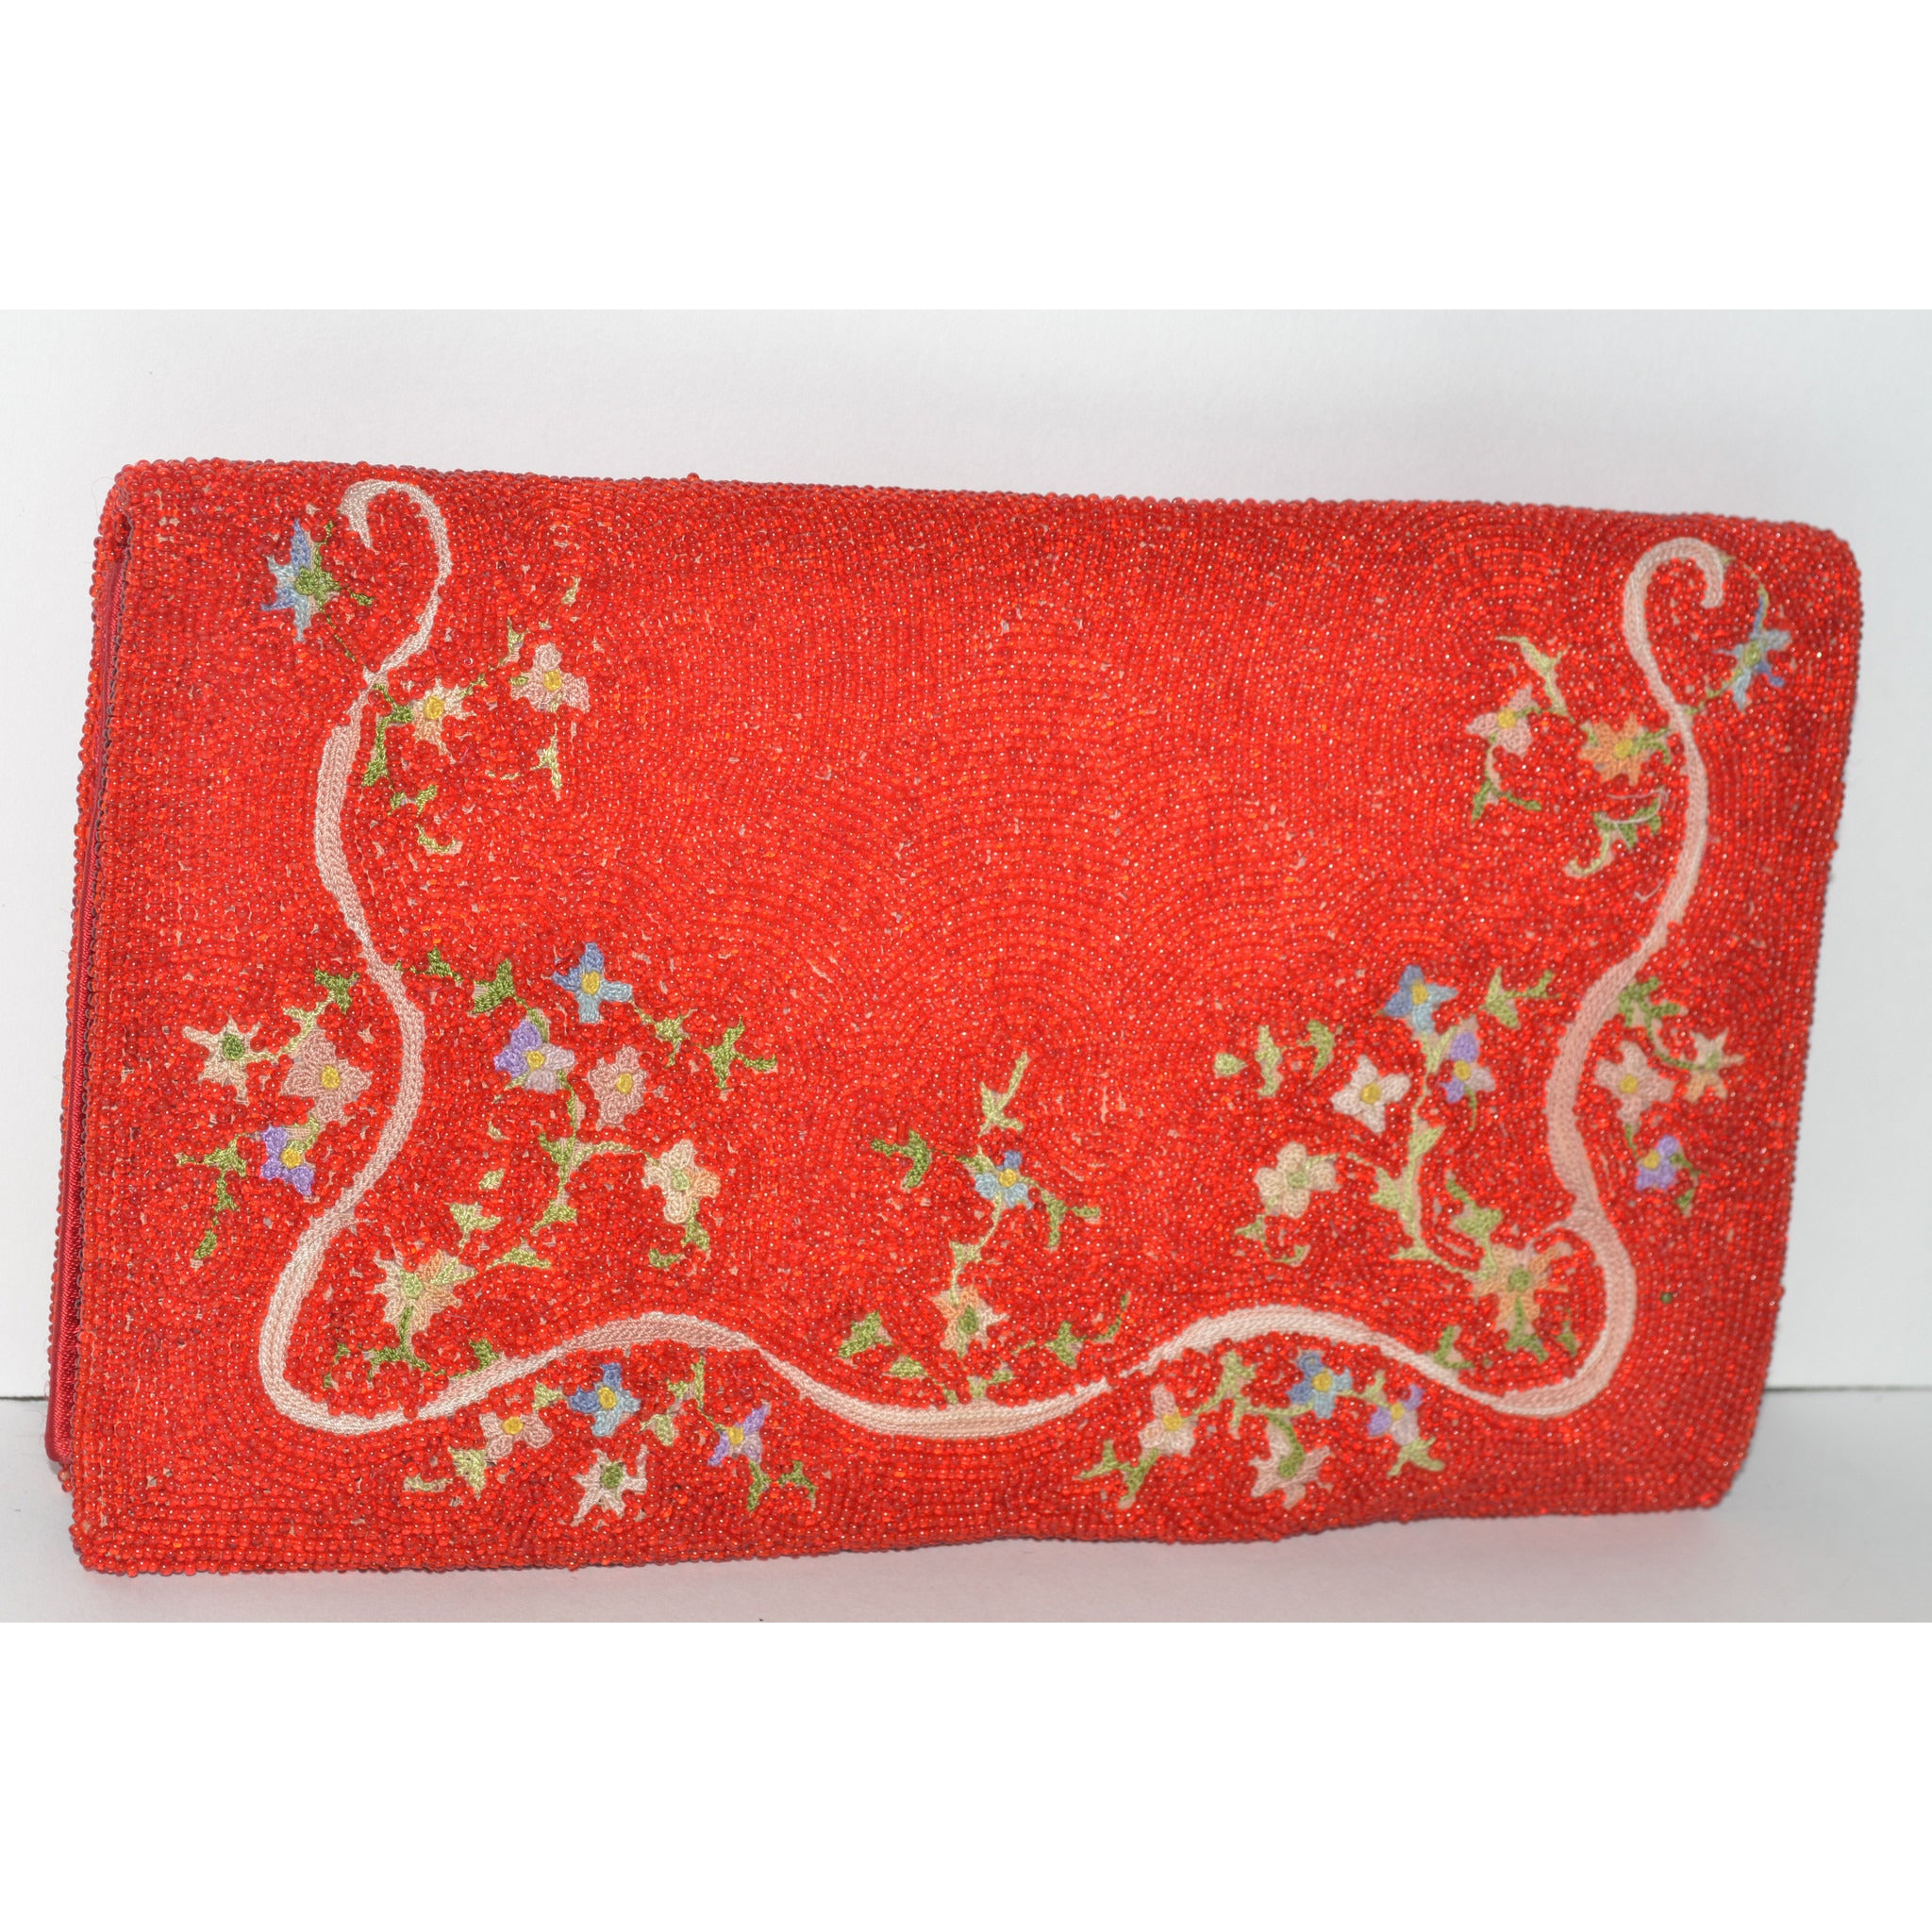 Vintage Red Beaded Embroidered Clutch Purse